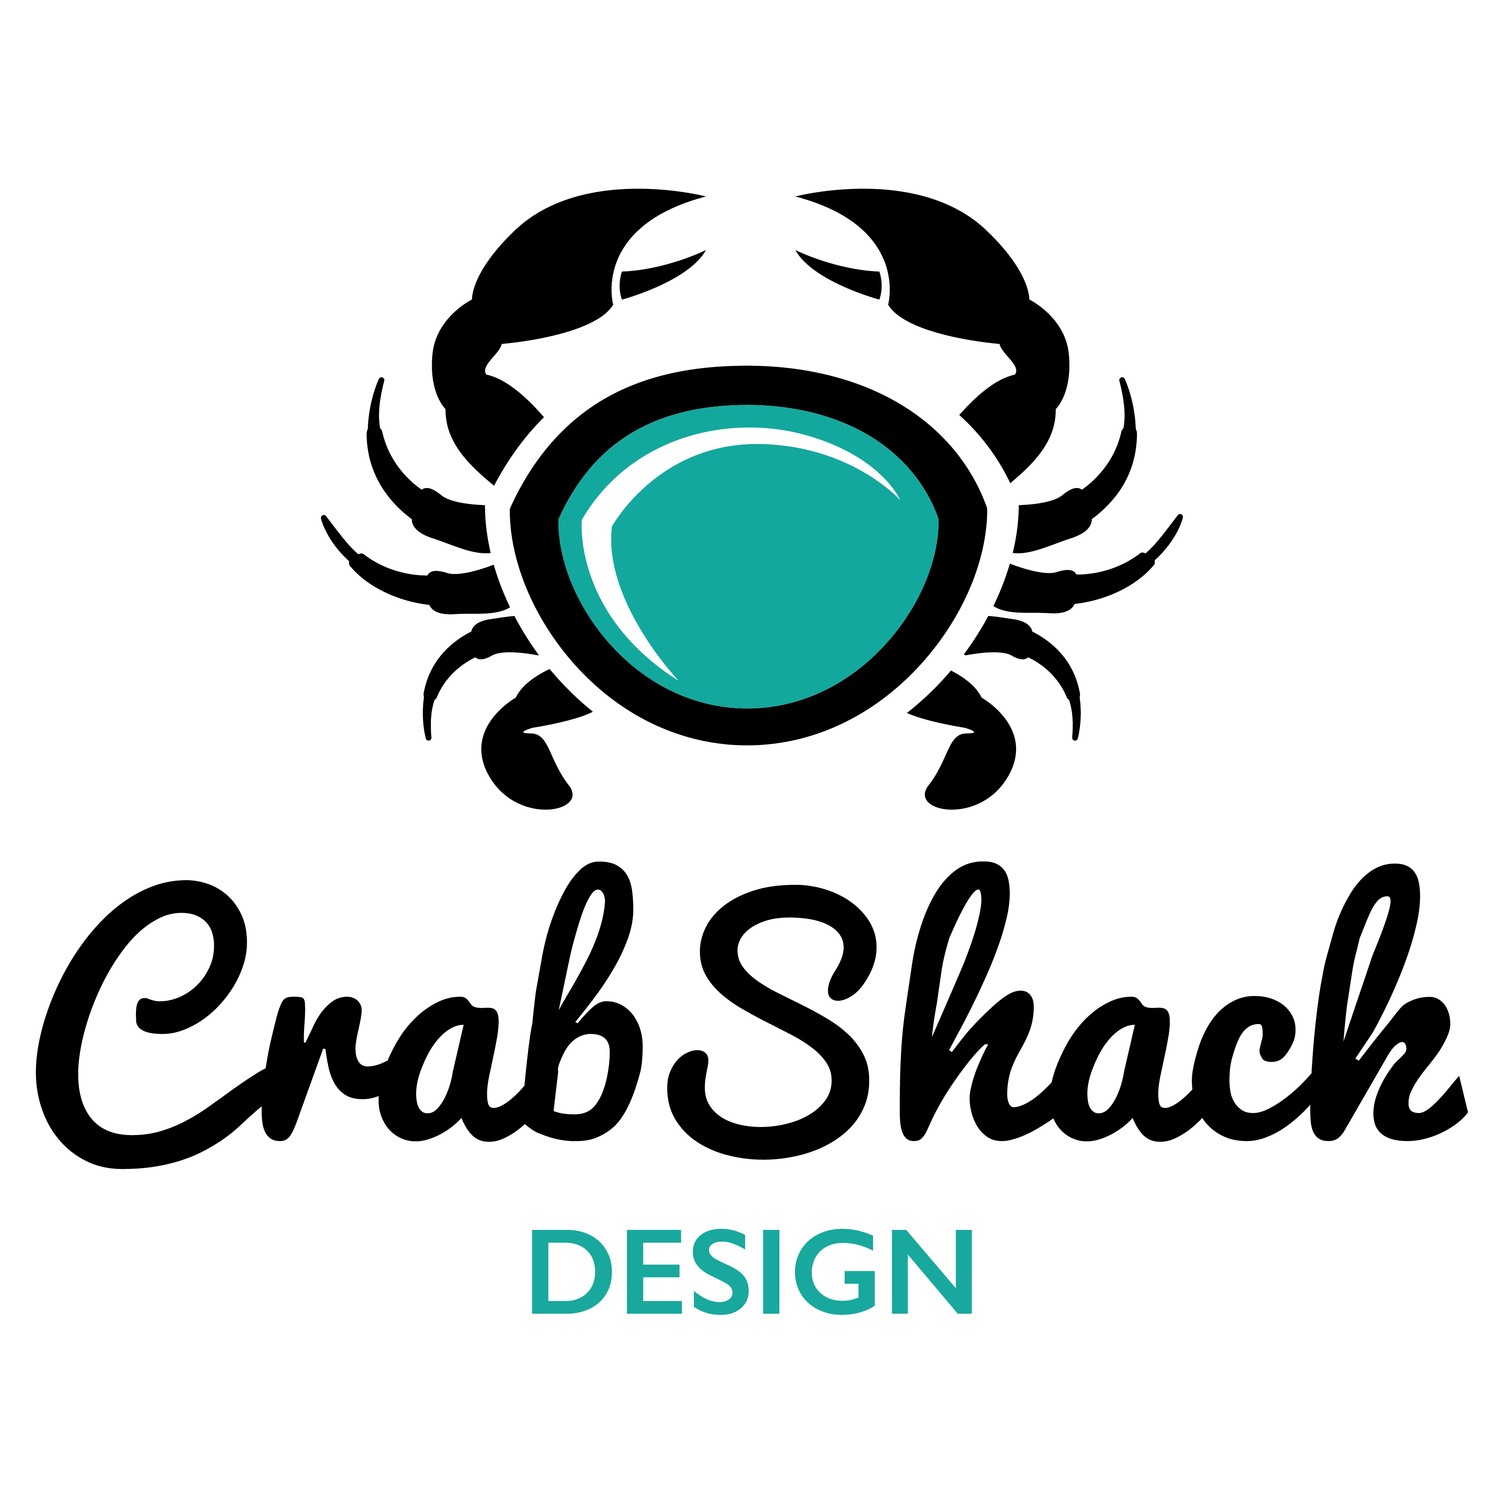 Crab Shack Design